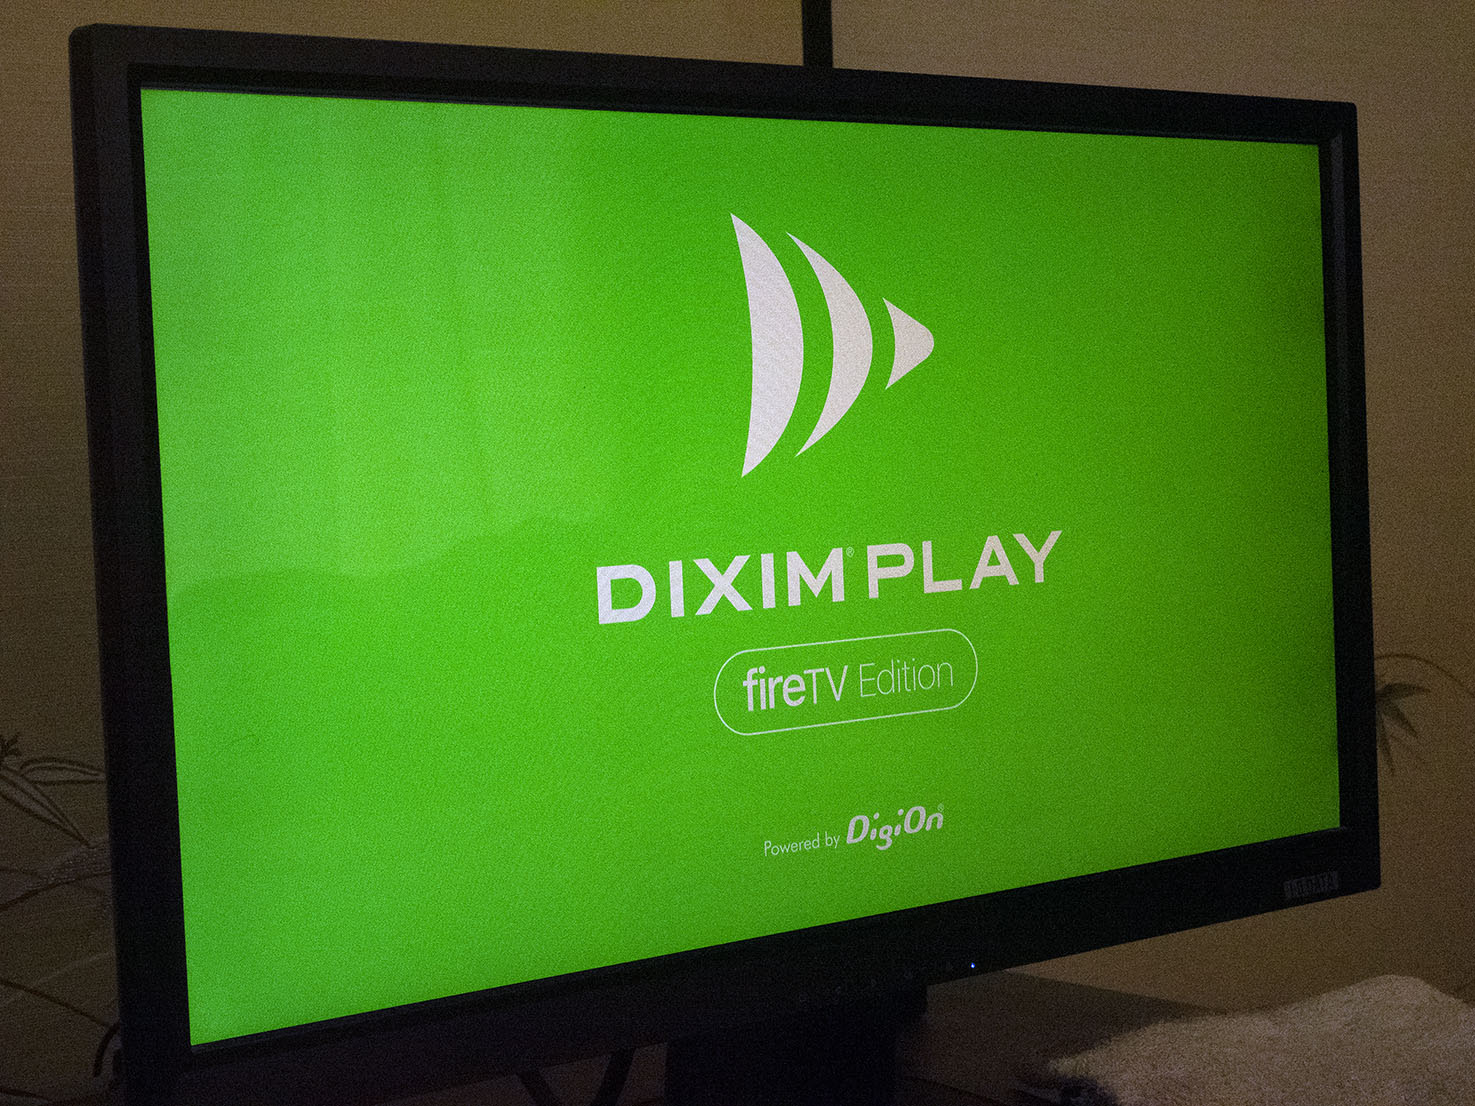 Amazon Fire TV Stick + DiXiM Play Fire TV版